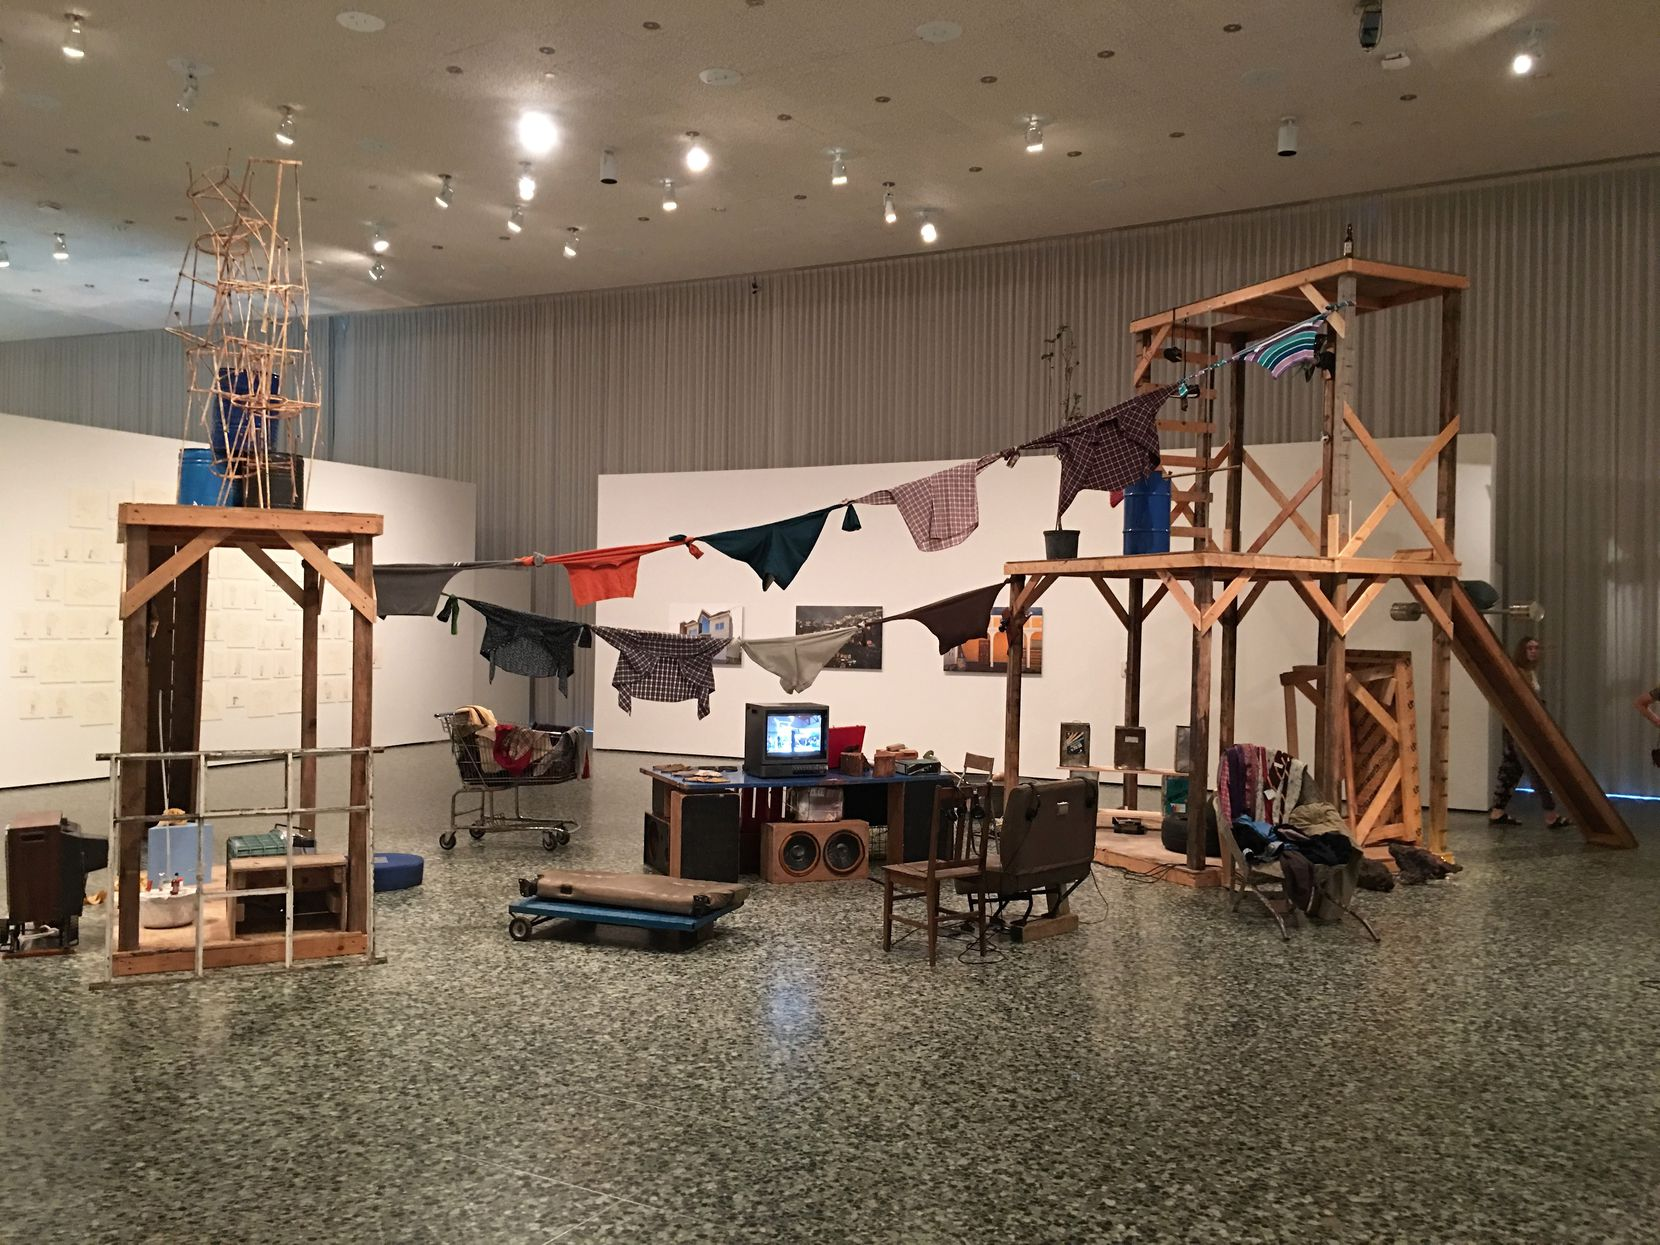 Abraham Cruzvillegas: Autoconstrucción, at the Museum of Fine Arts, Houston